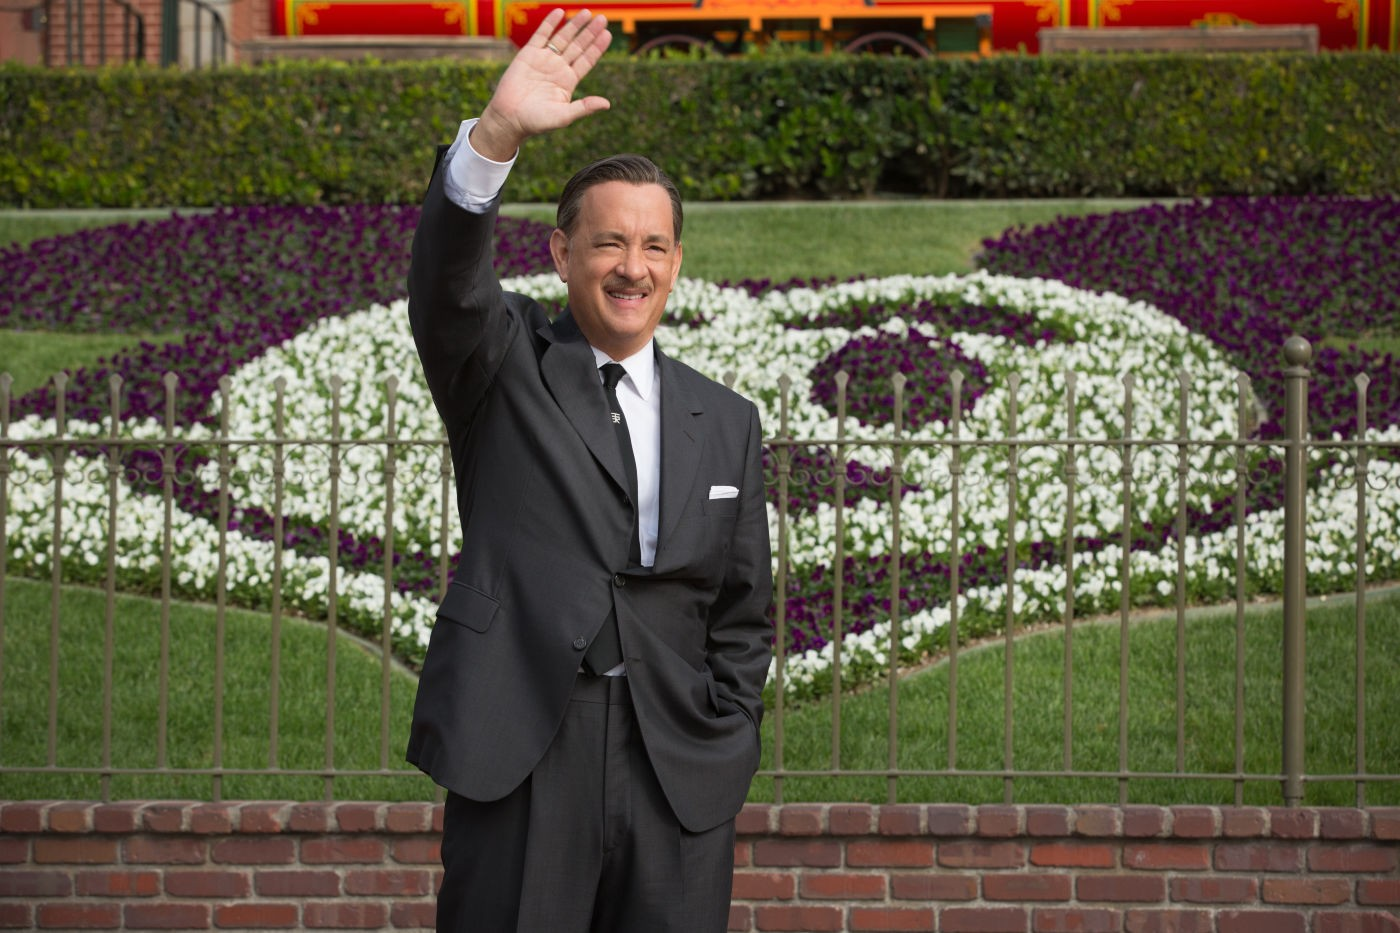 Tom Hanks as Walt Disney in Saving Mr Banks (2013)